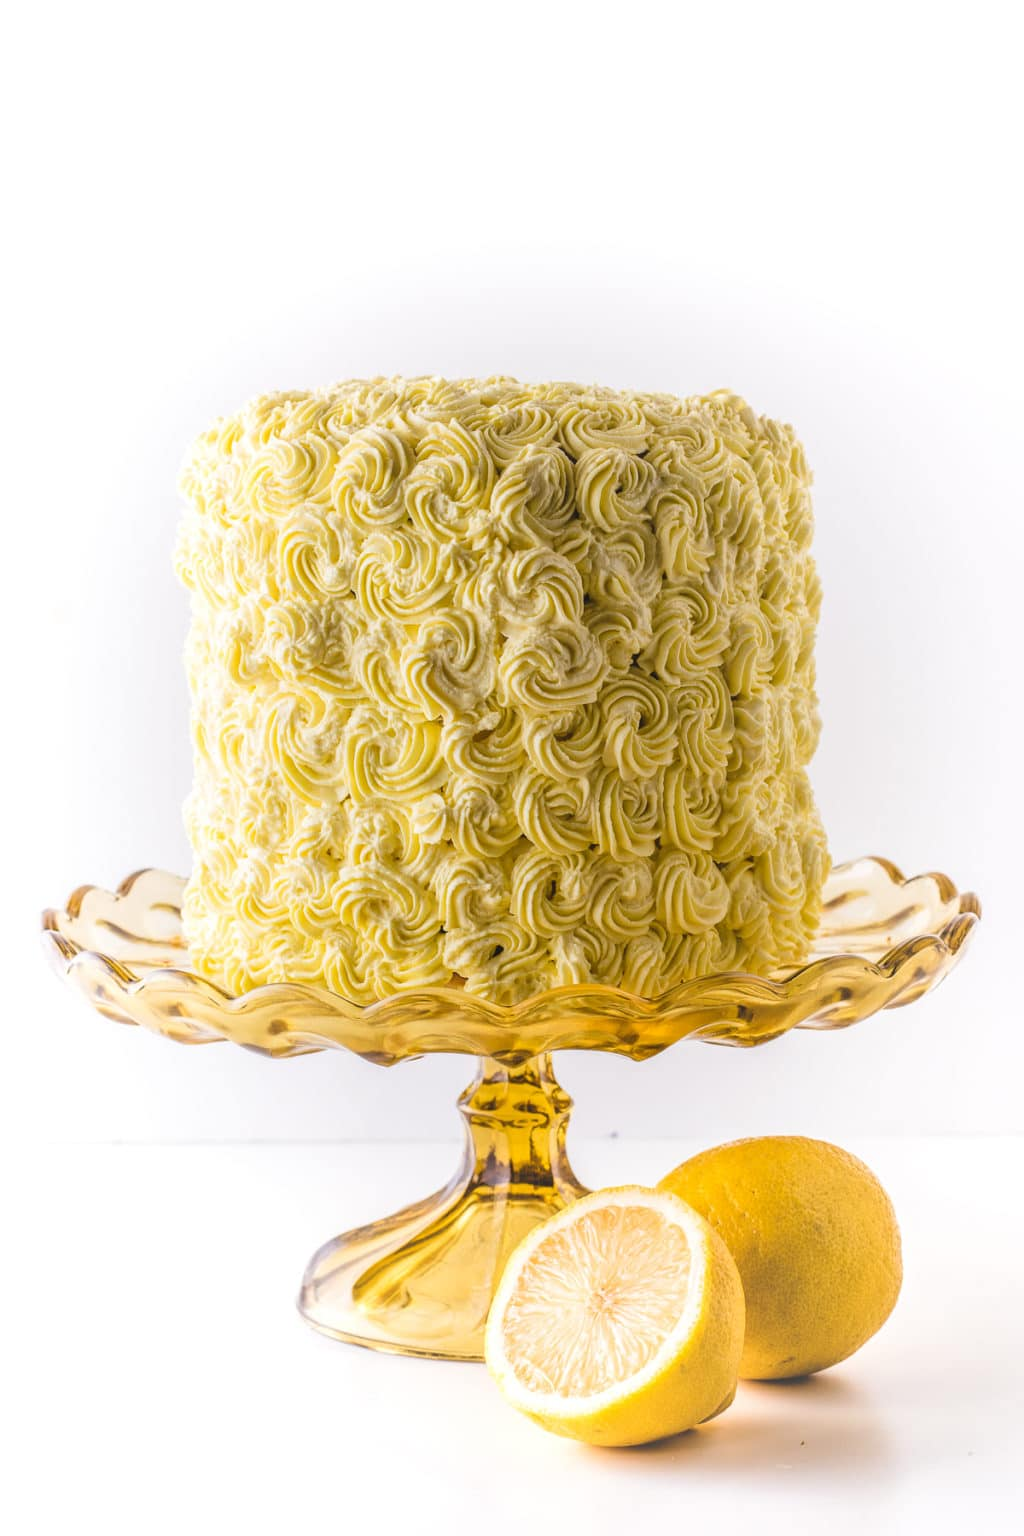 A pretty yellow cake stacked high with yellow rosettes on a yellow glass cake stand against a bright while background.